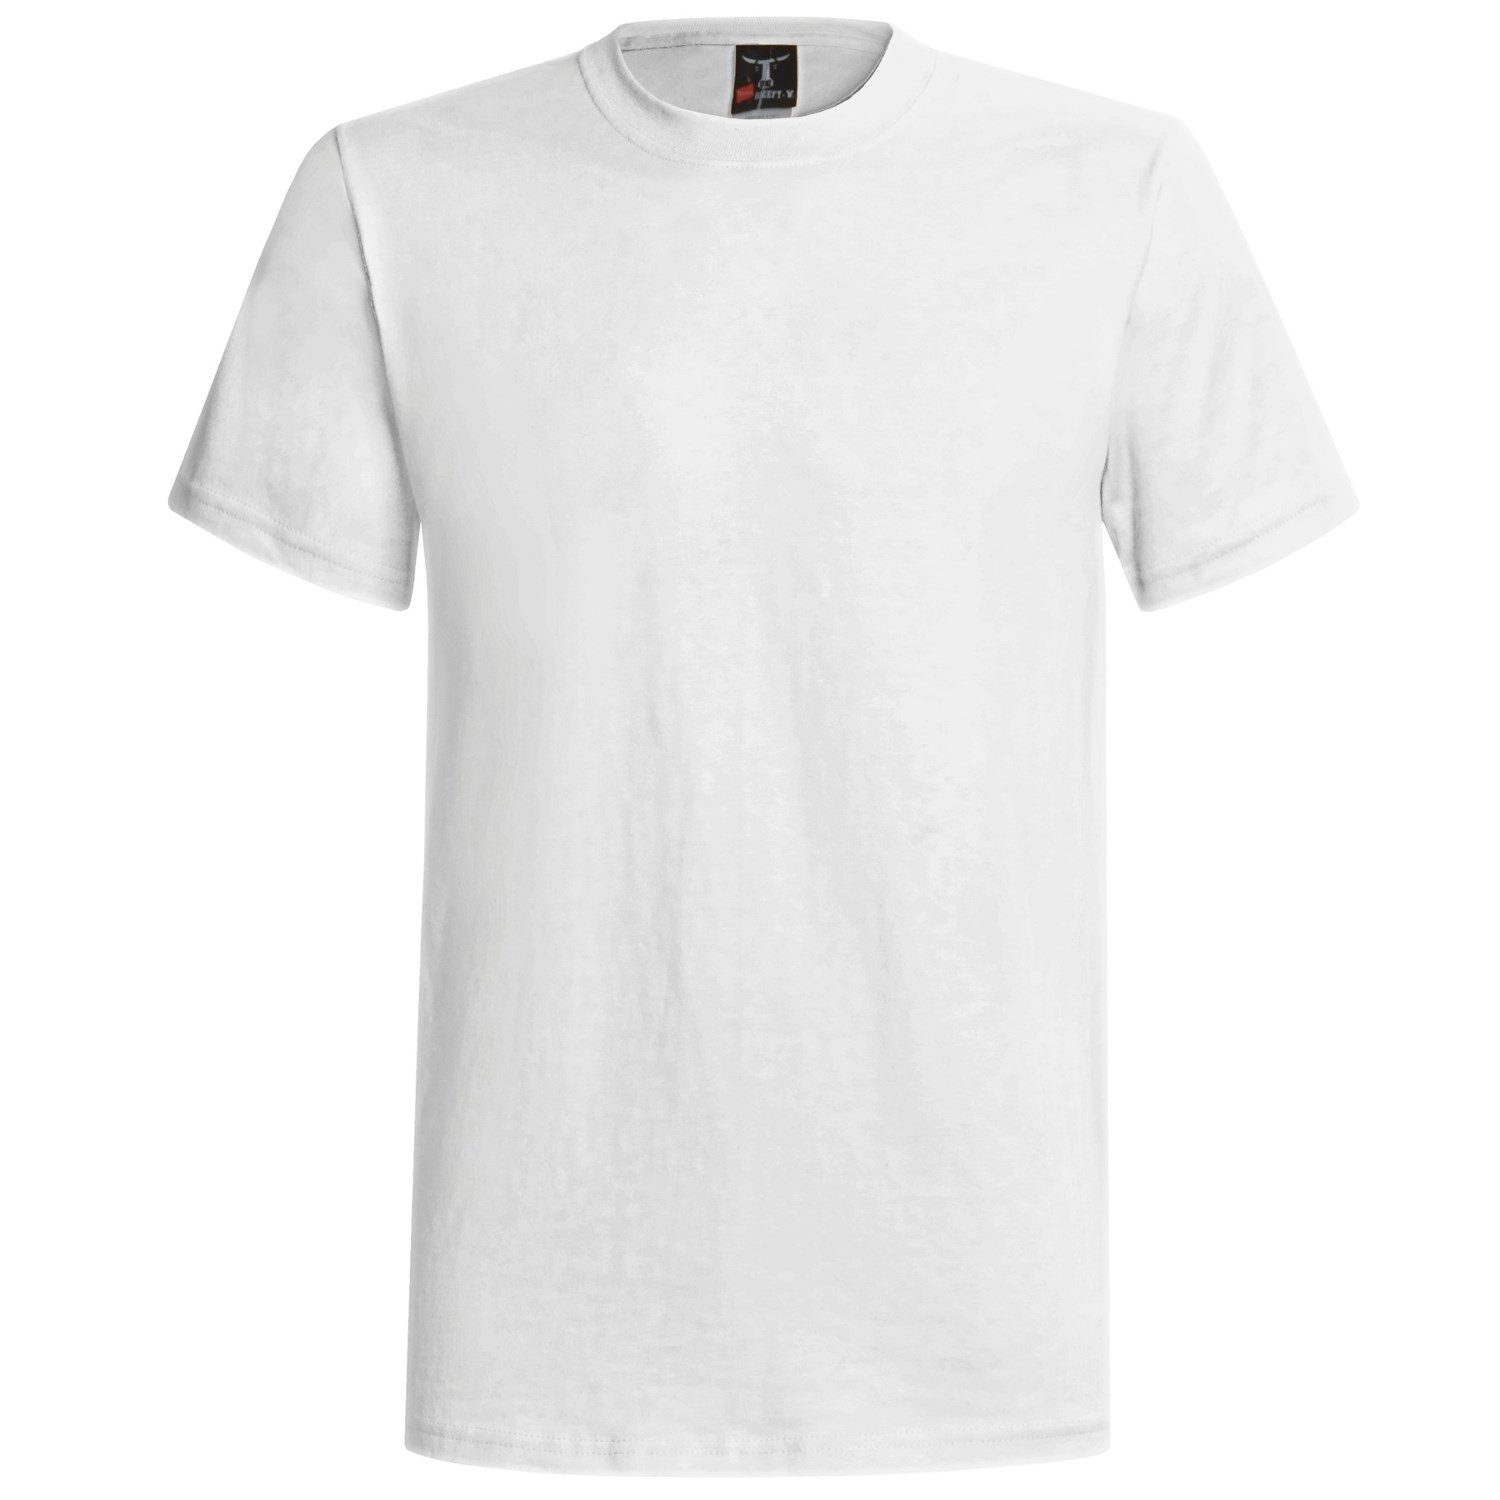 Hanes beefy t t shirt for men and women save 55 for Hanes beefy t custom shirts